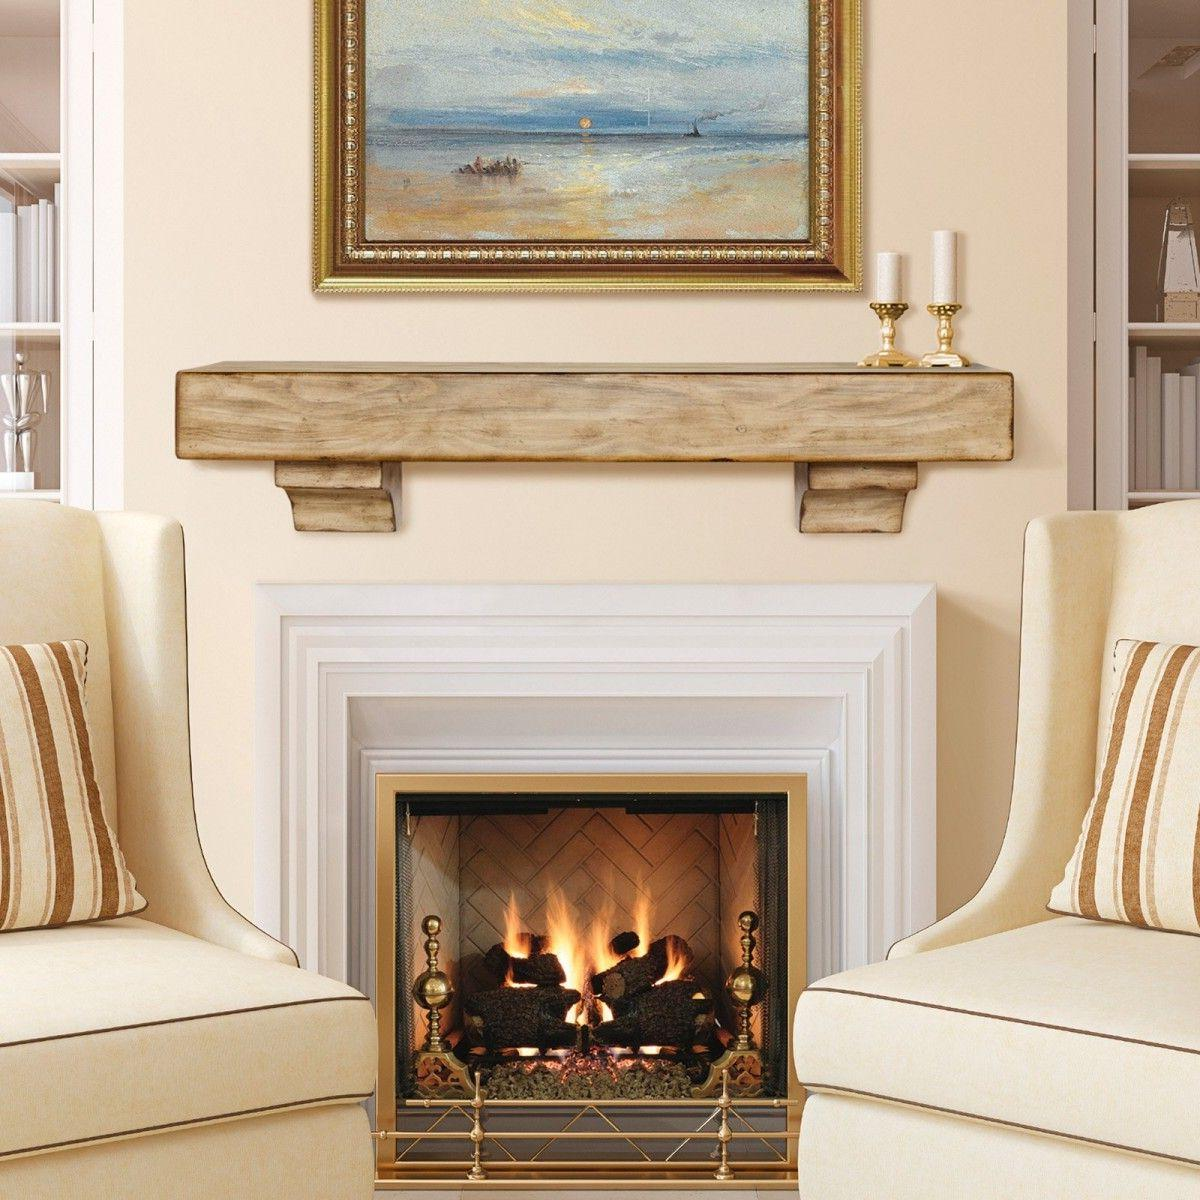 Simple Mantel Ideas: 30 Best Fireplace Mantel Ideas And Designs To Brighten Up